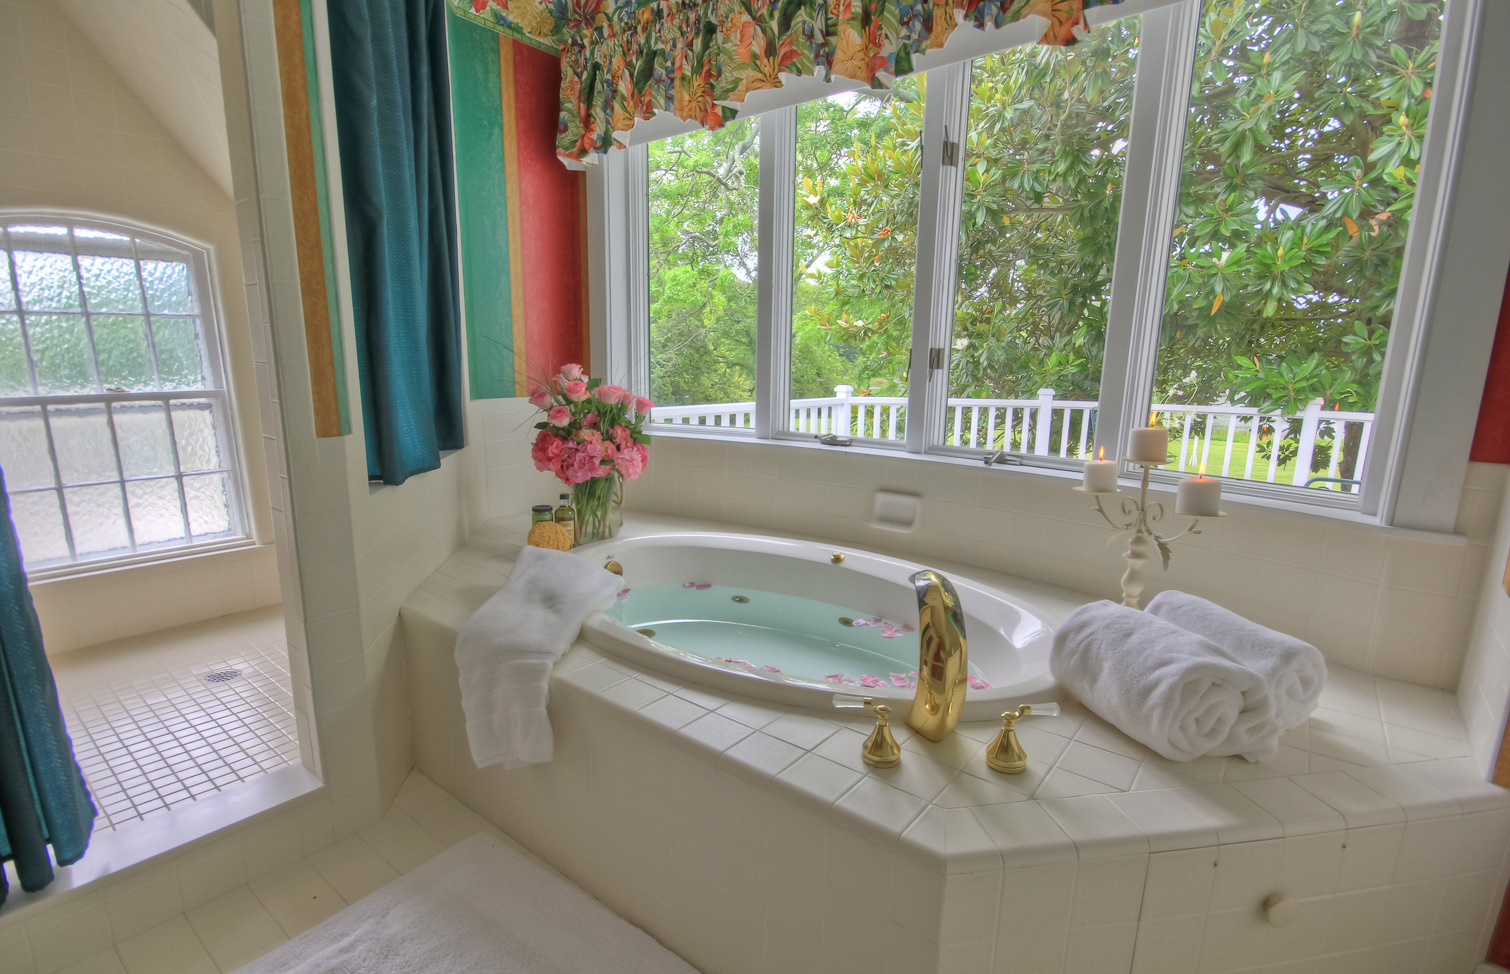 drawn bath with rose petals flower arrangement and lit candles by large windows